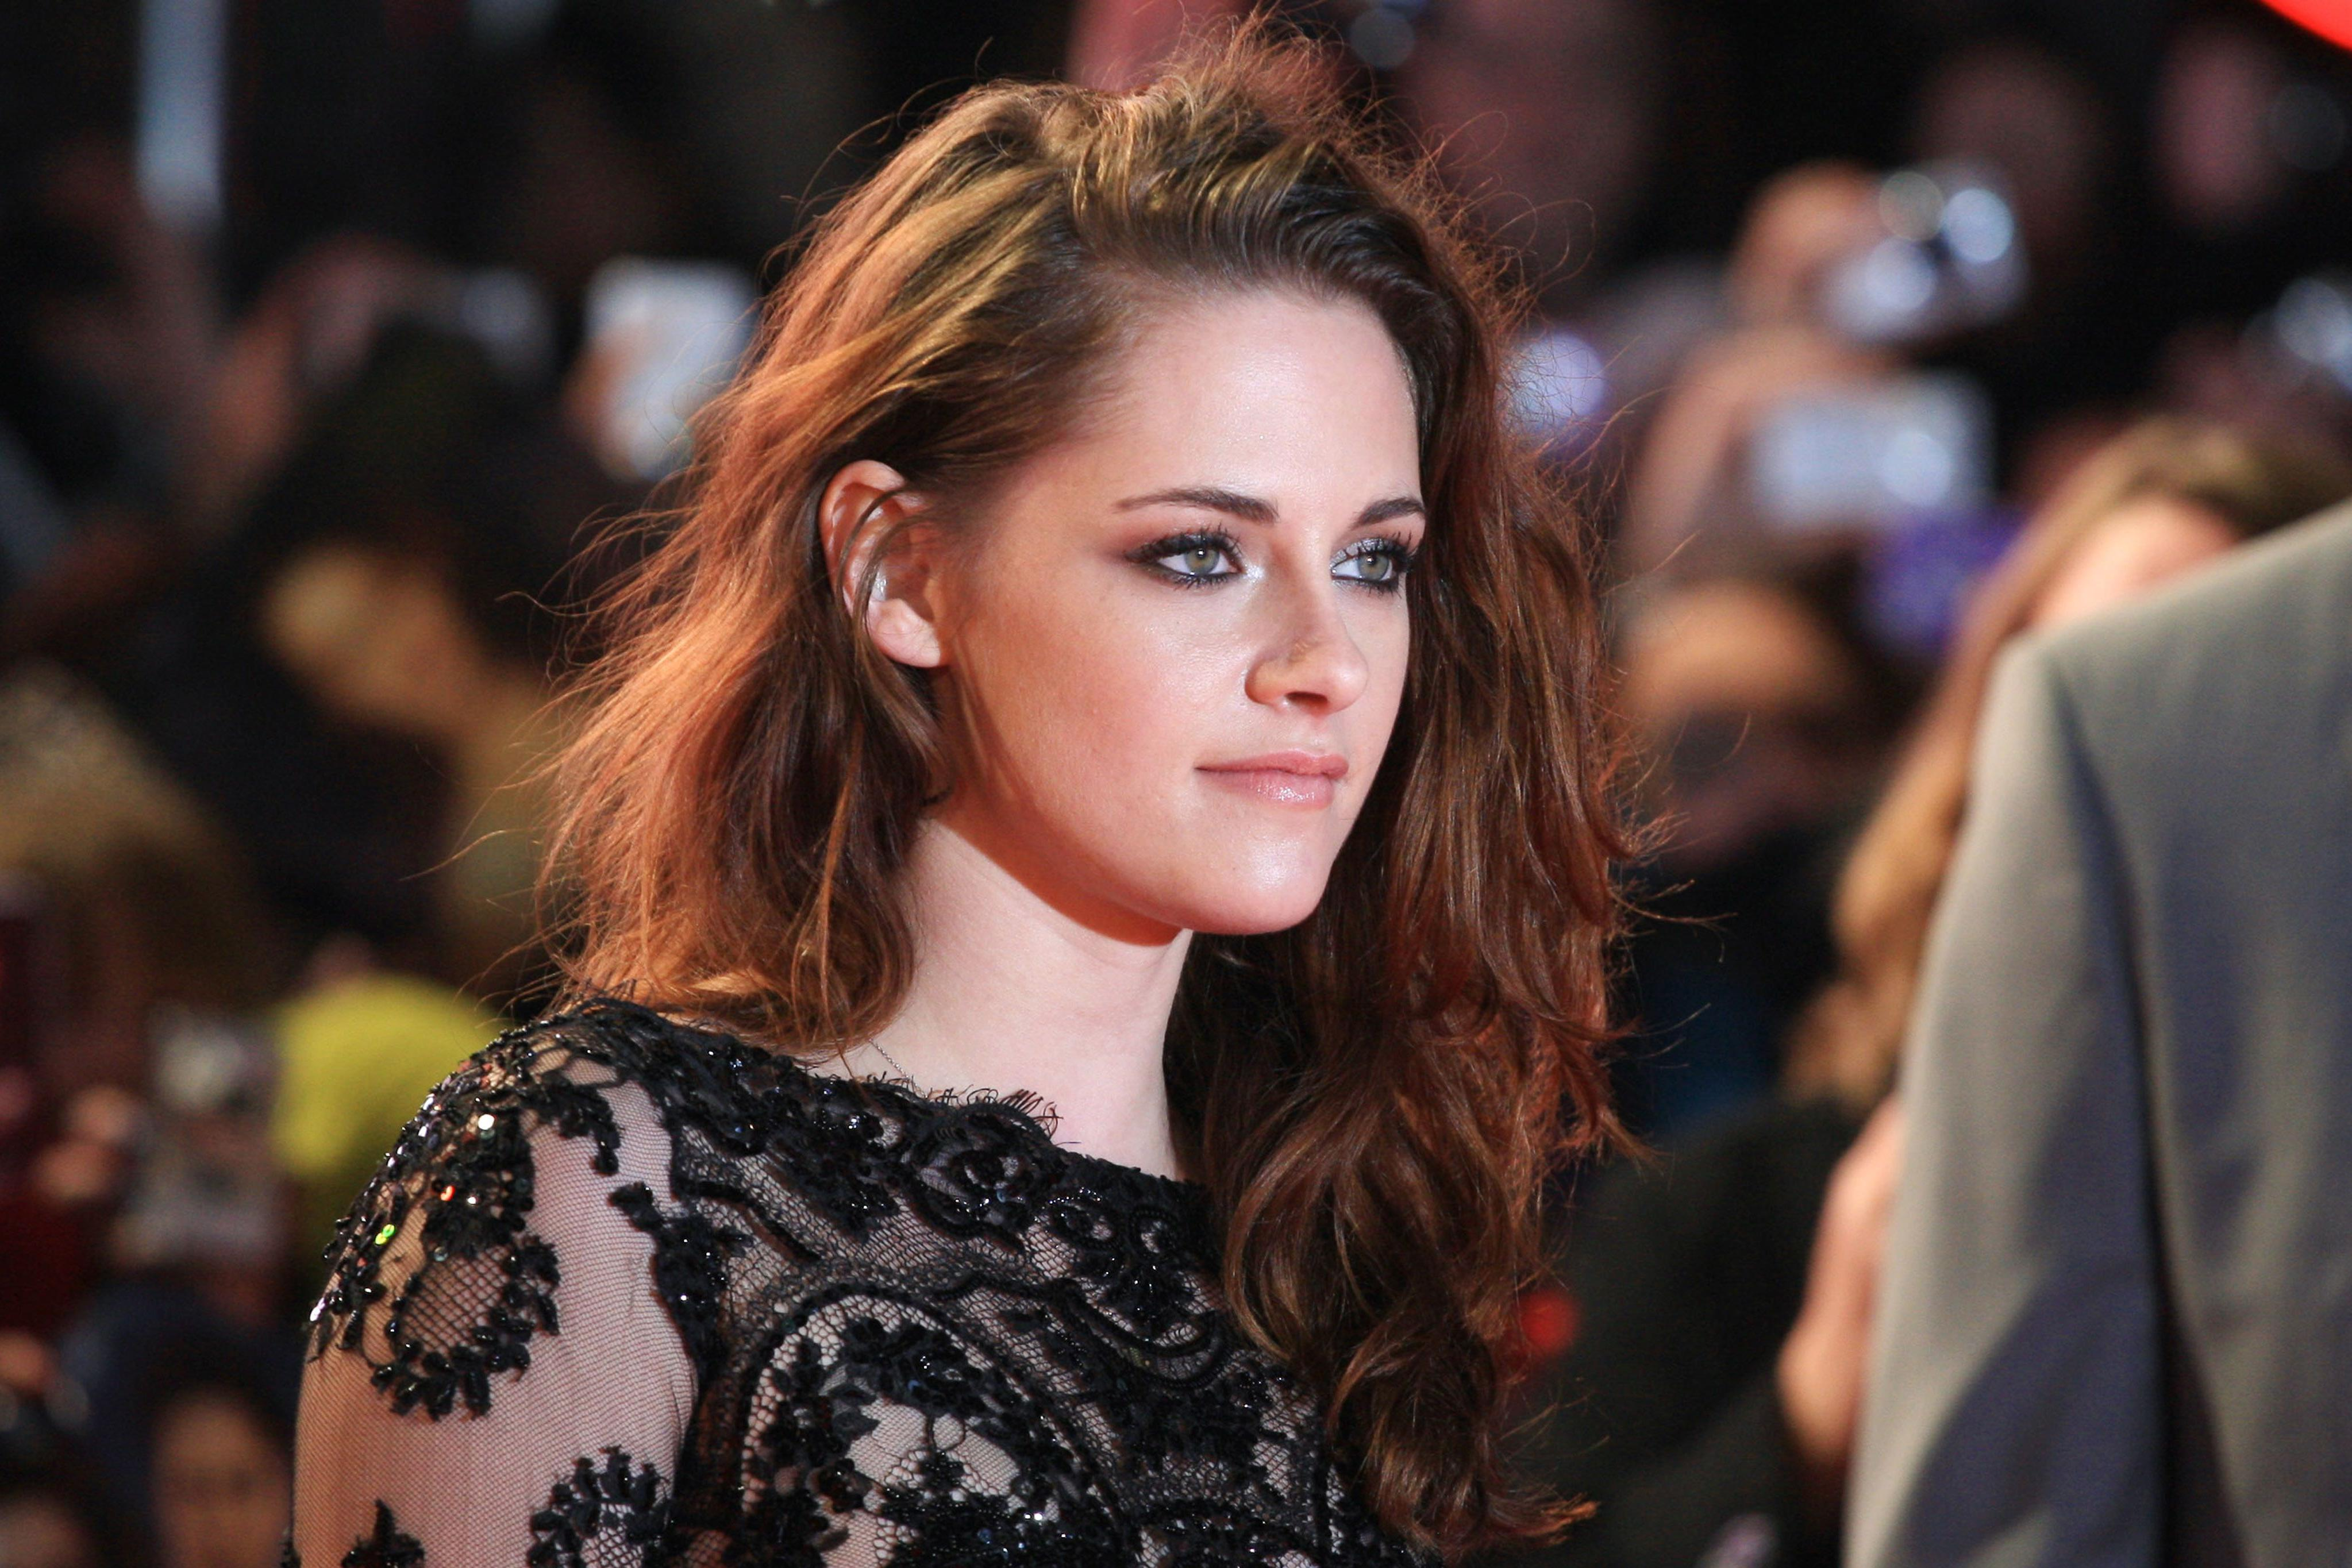 Behind Kristen Stewart's Relationships And Career Path